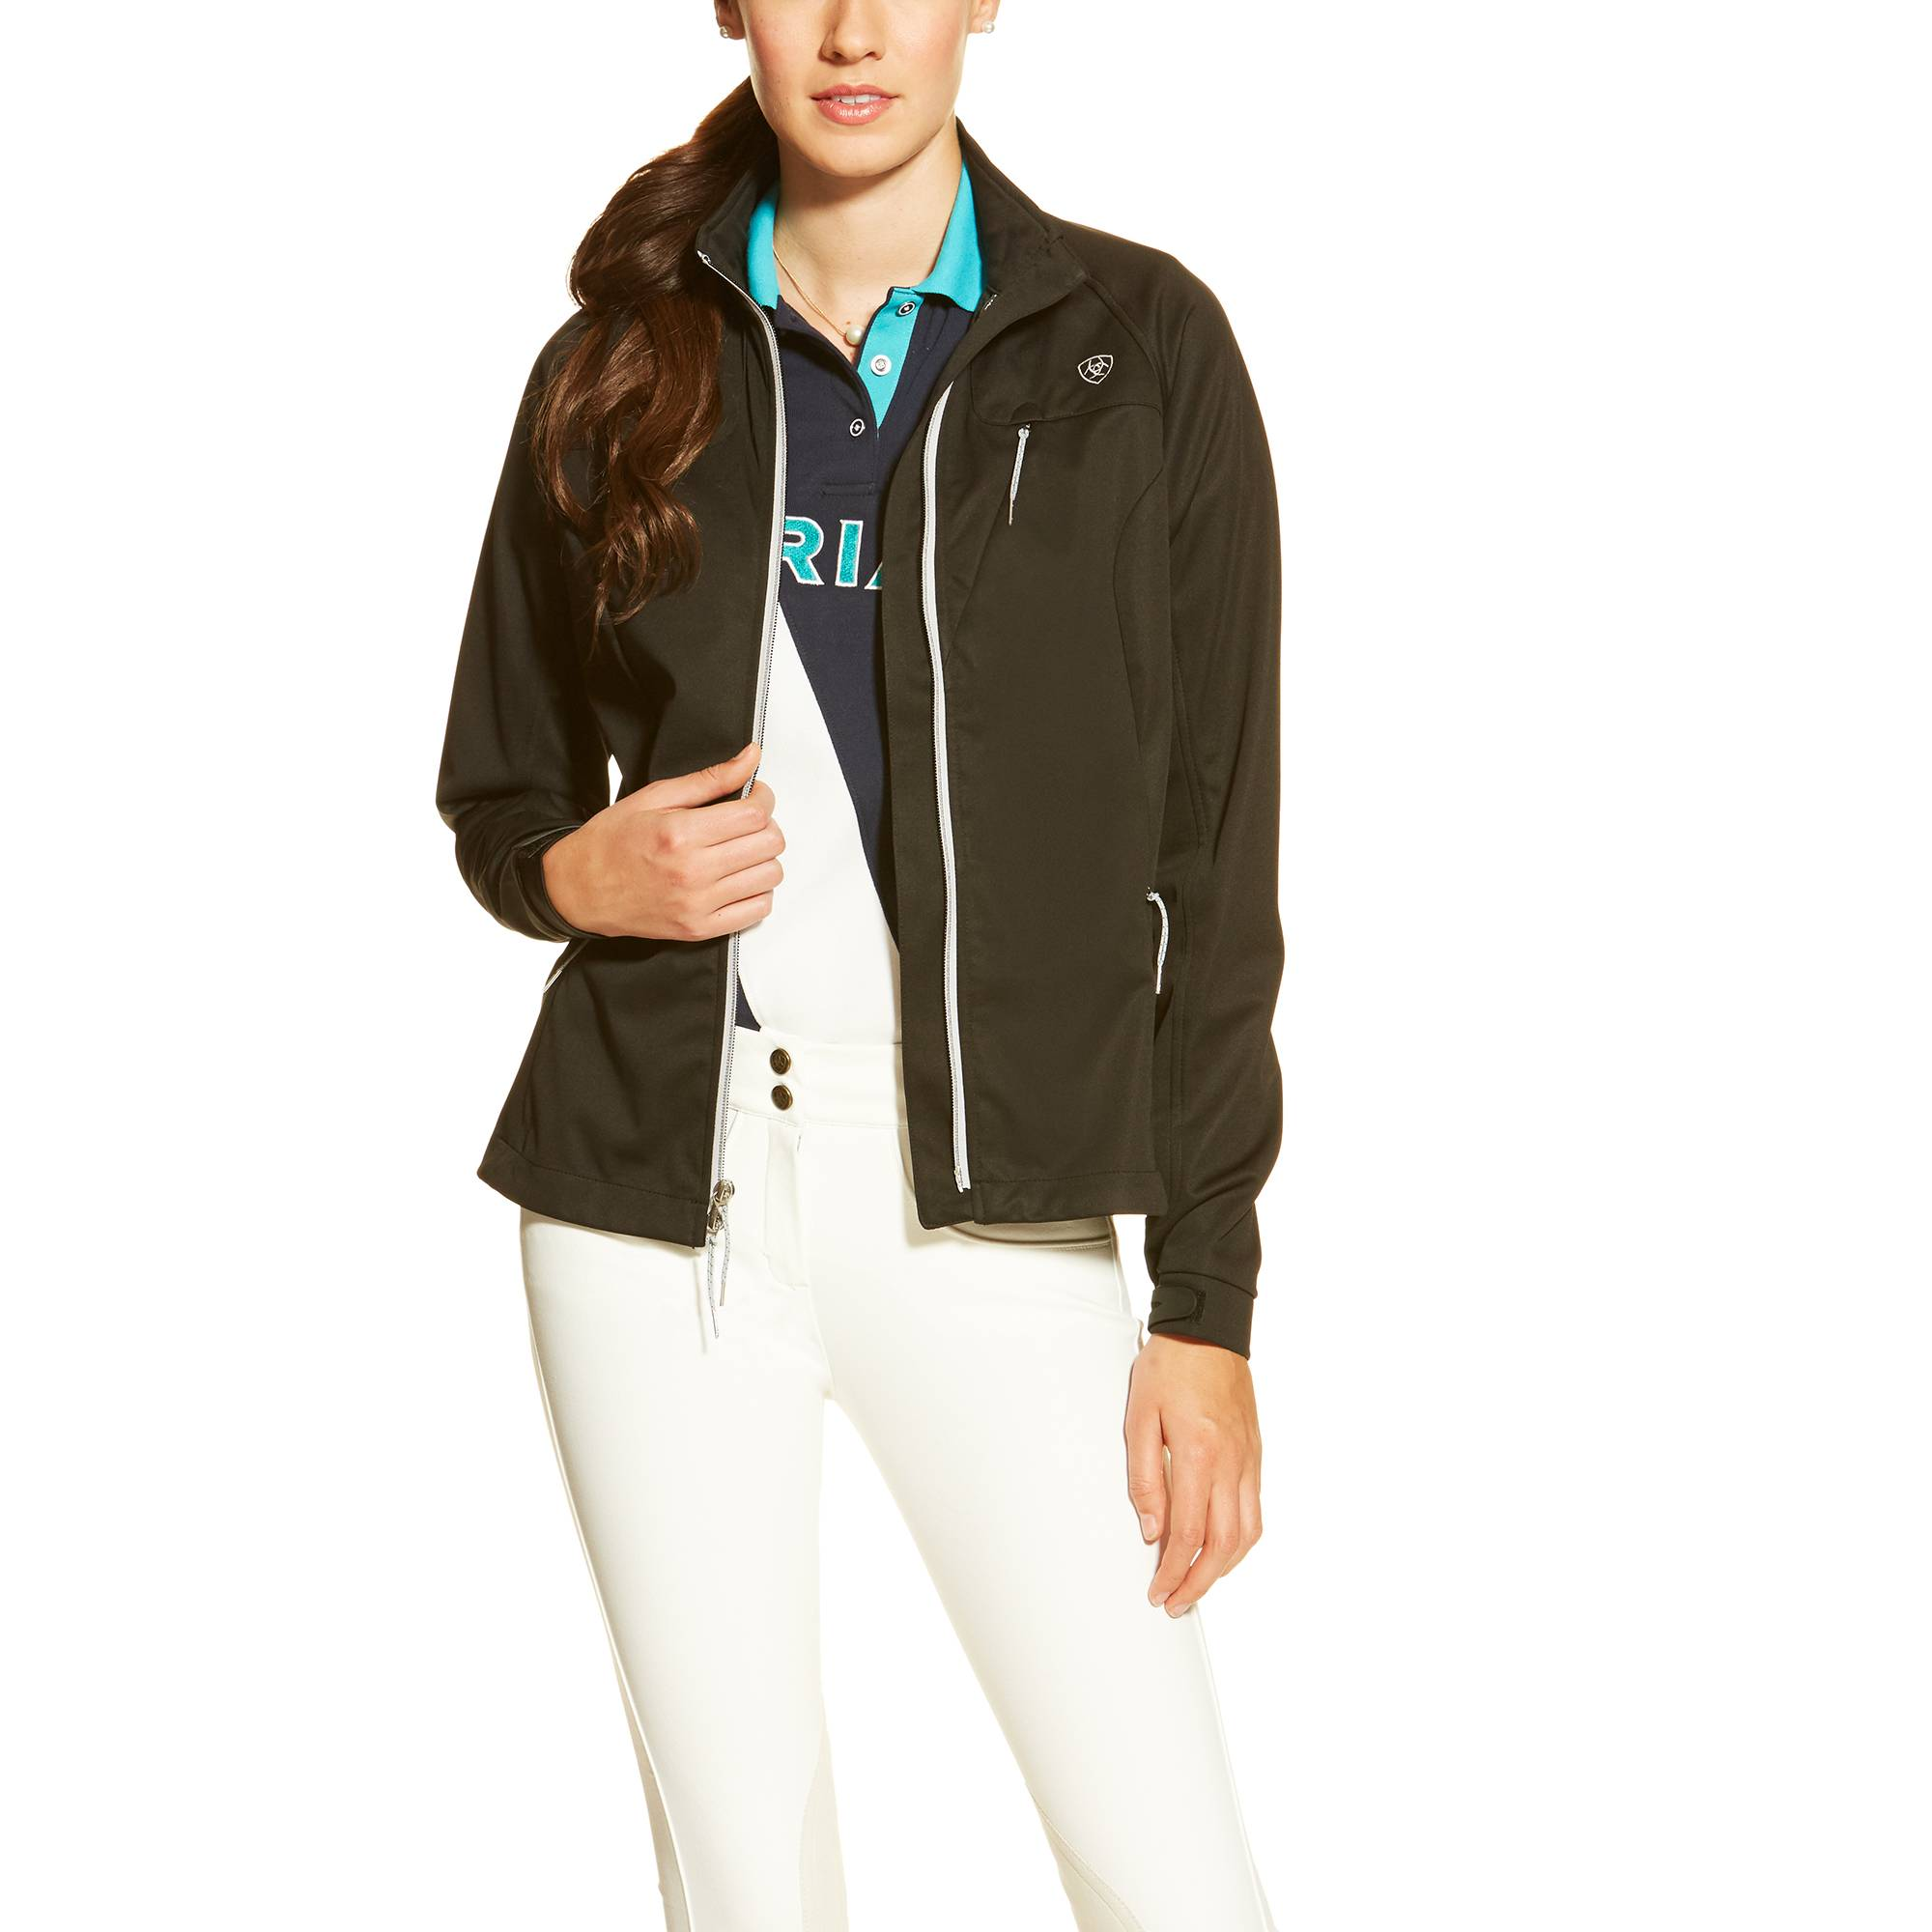 Ariat Joey Jacket - Ladies - Black